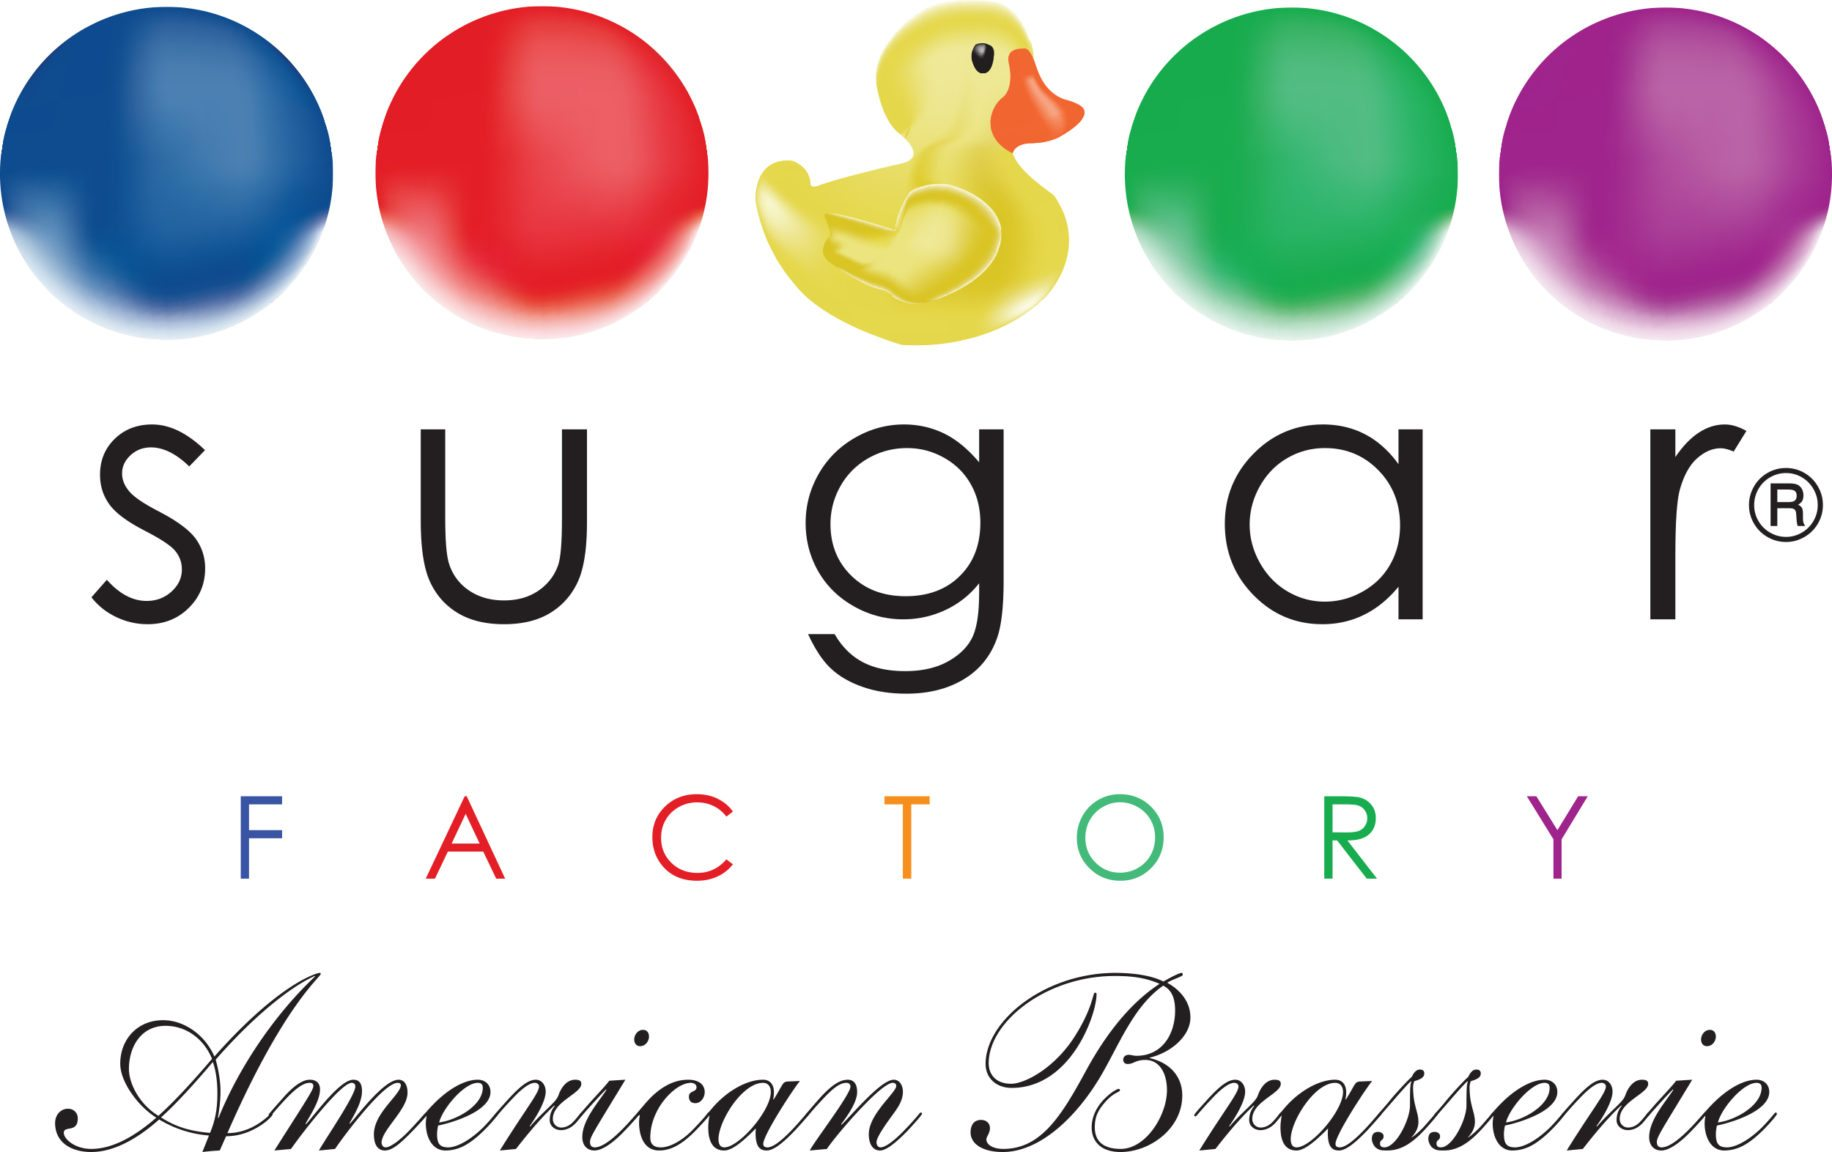 A Trip to Sugar Factory; the 'Willy Wonka' of Restaurants